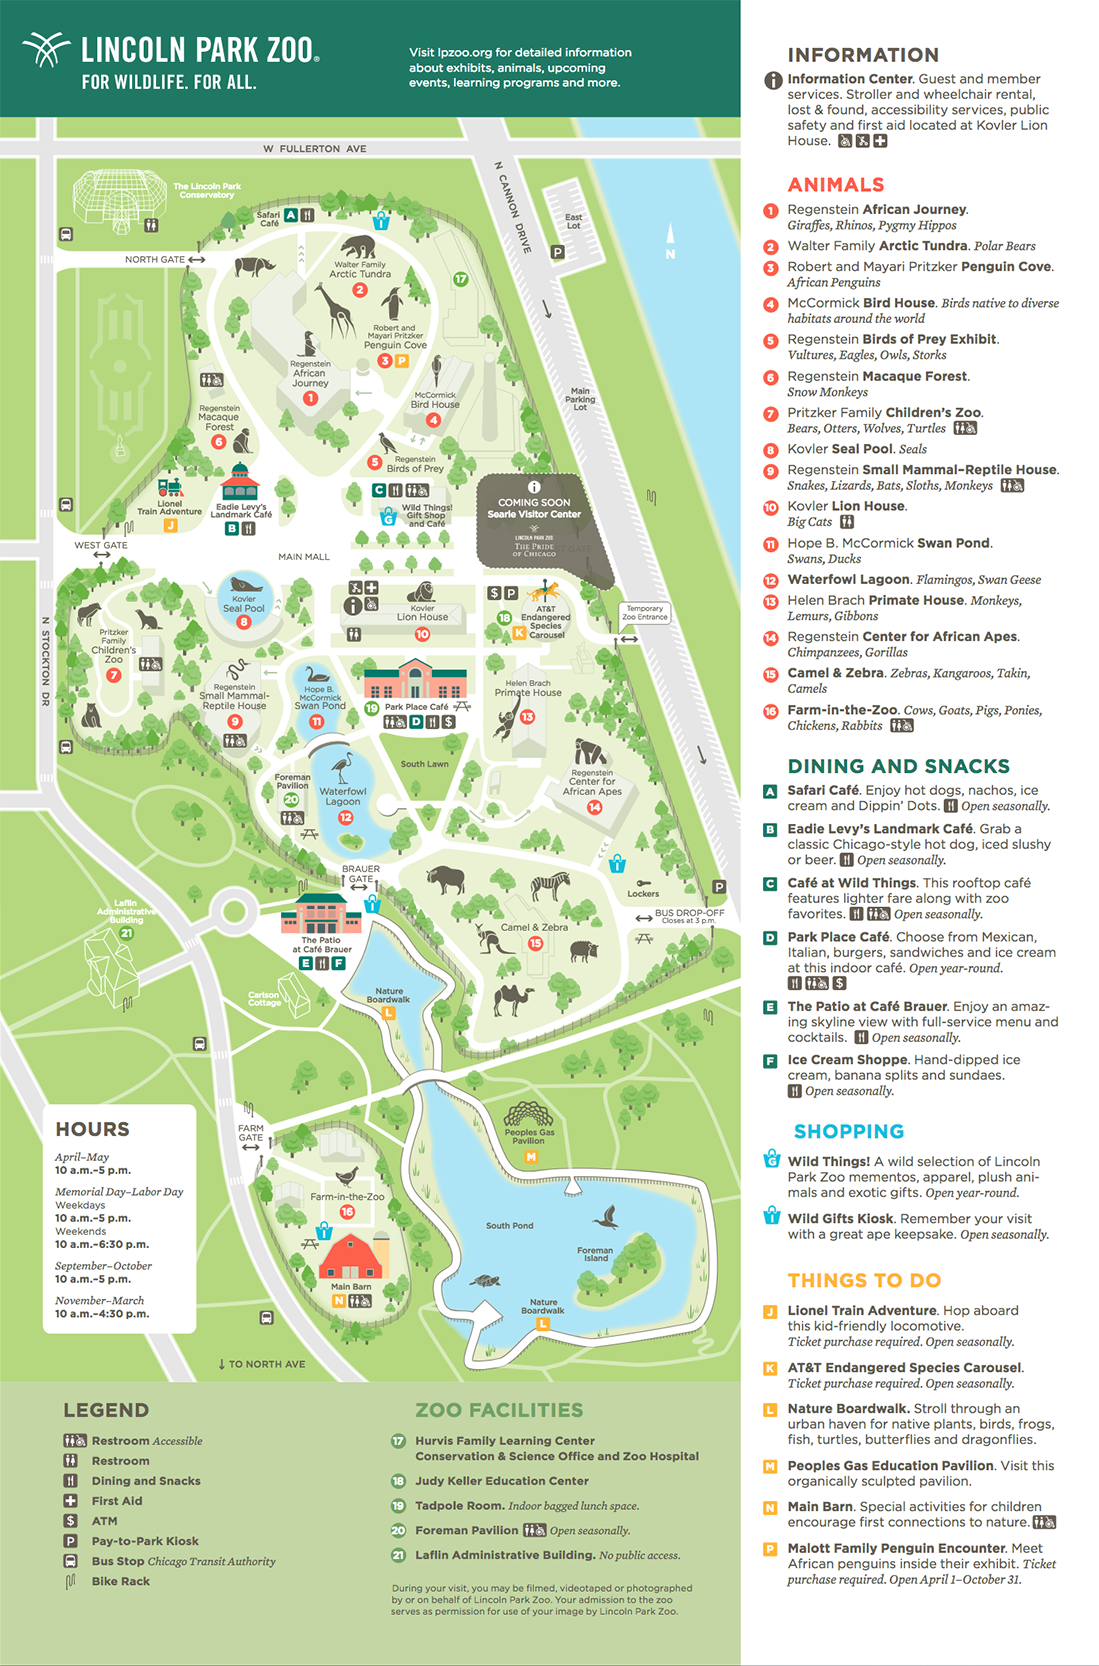 Zoo Map | Lincoln Park Zoo | projext animals in 2019 | Zoo map ... Zoo Map Of Philadelphia on map of wissahickon valley park, map of pennsylvania, map of independence national park, map of fairmount park, map of reading terminal market, map of united states, map of seaworld san diego, map of laurel hill cemetery, map of mount pleasant, map of funplex, map of please touch museum, map of congress hall, map of american red cross, map of wachovia center, map of drexel university, map of love park, map of swarthmore college, map of betsy ross house, map of sesame place, map of center city,